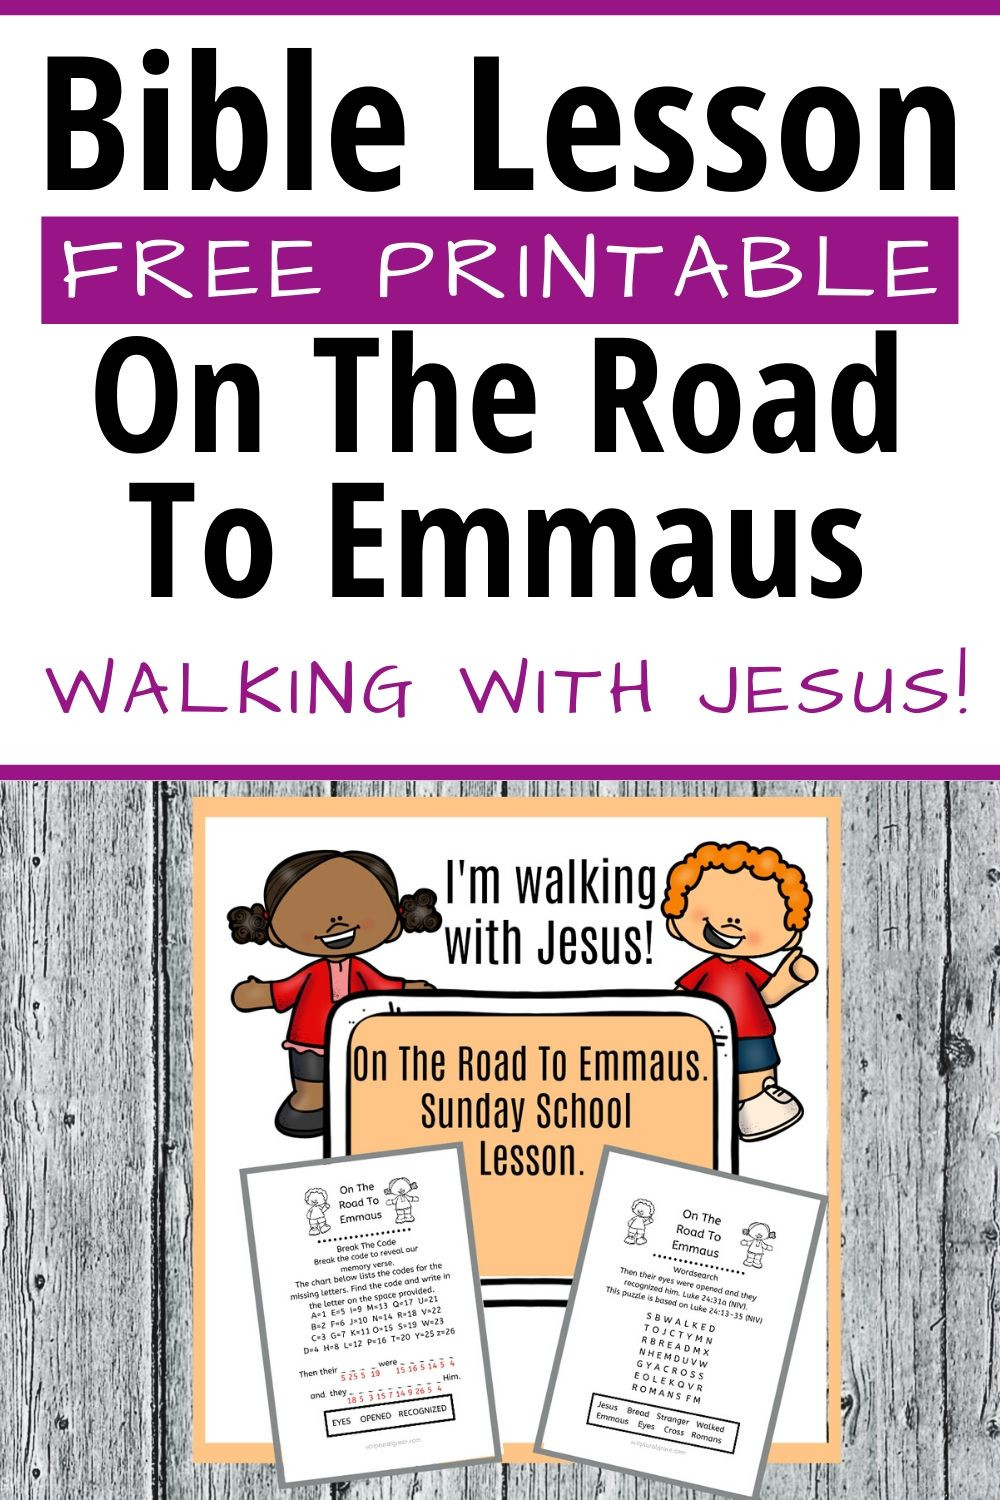 Free bible lesson and free printable on the road to Emmaus